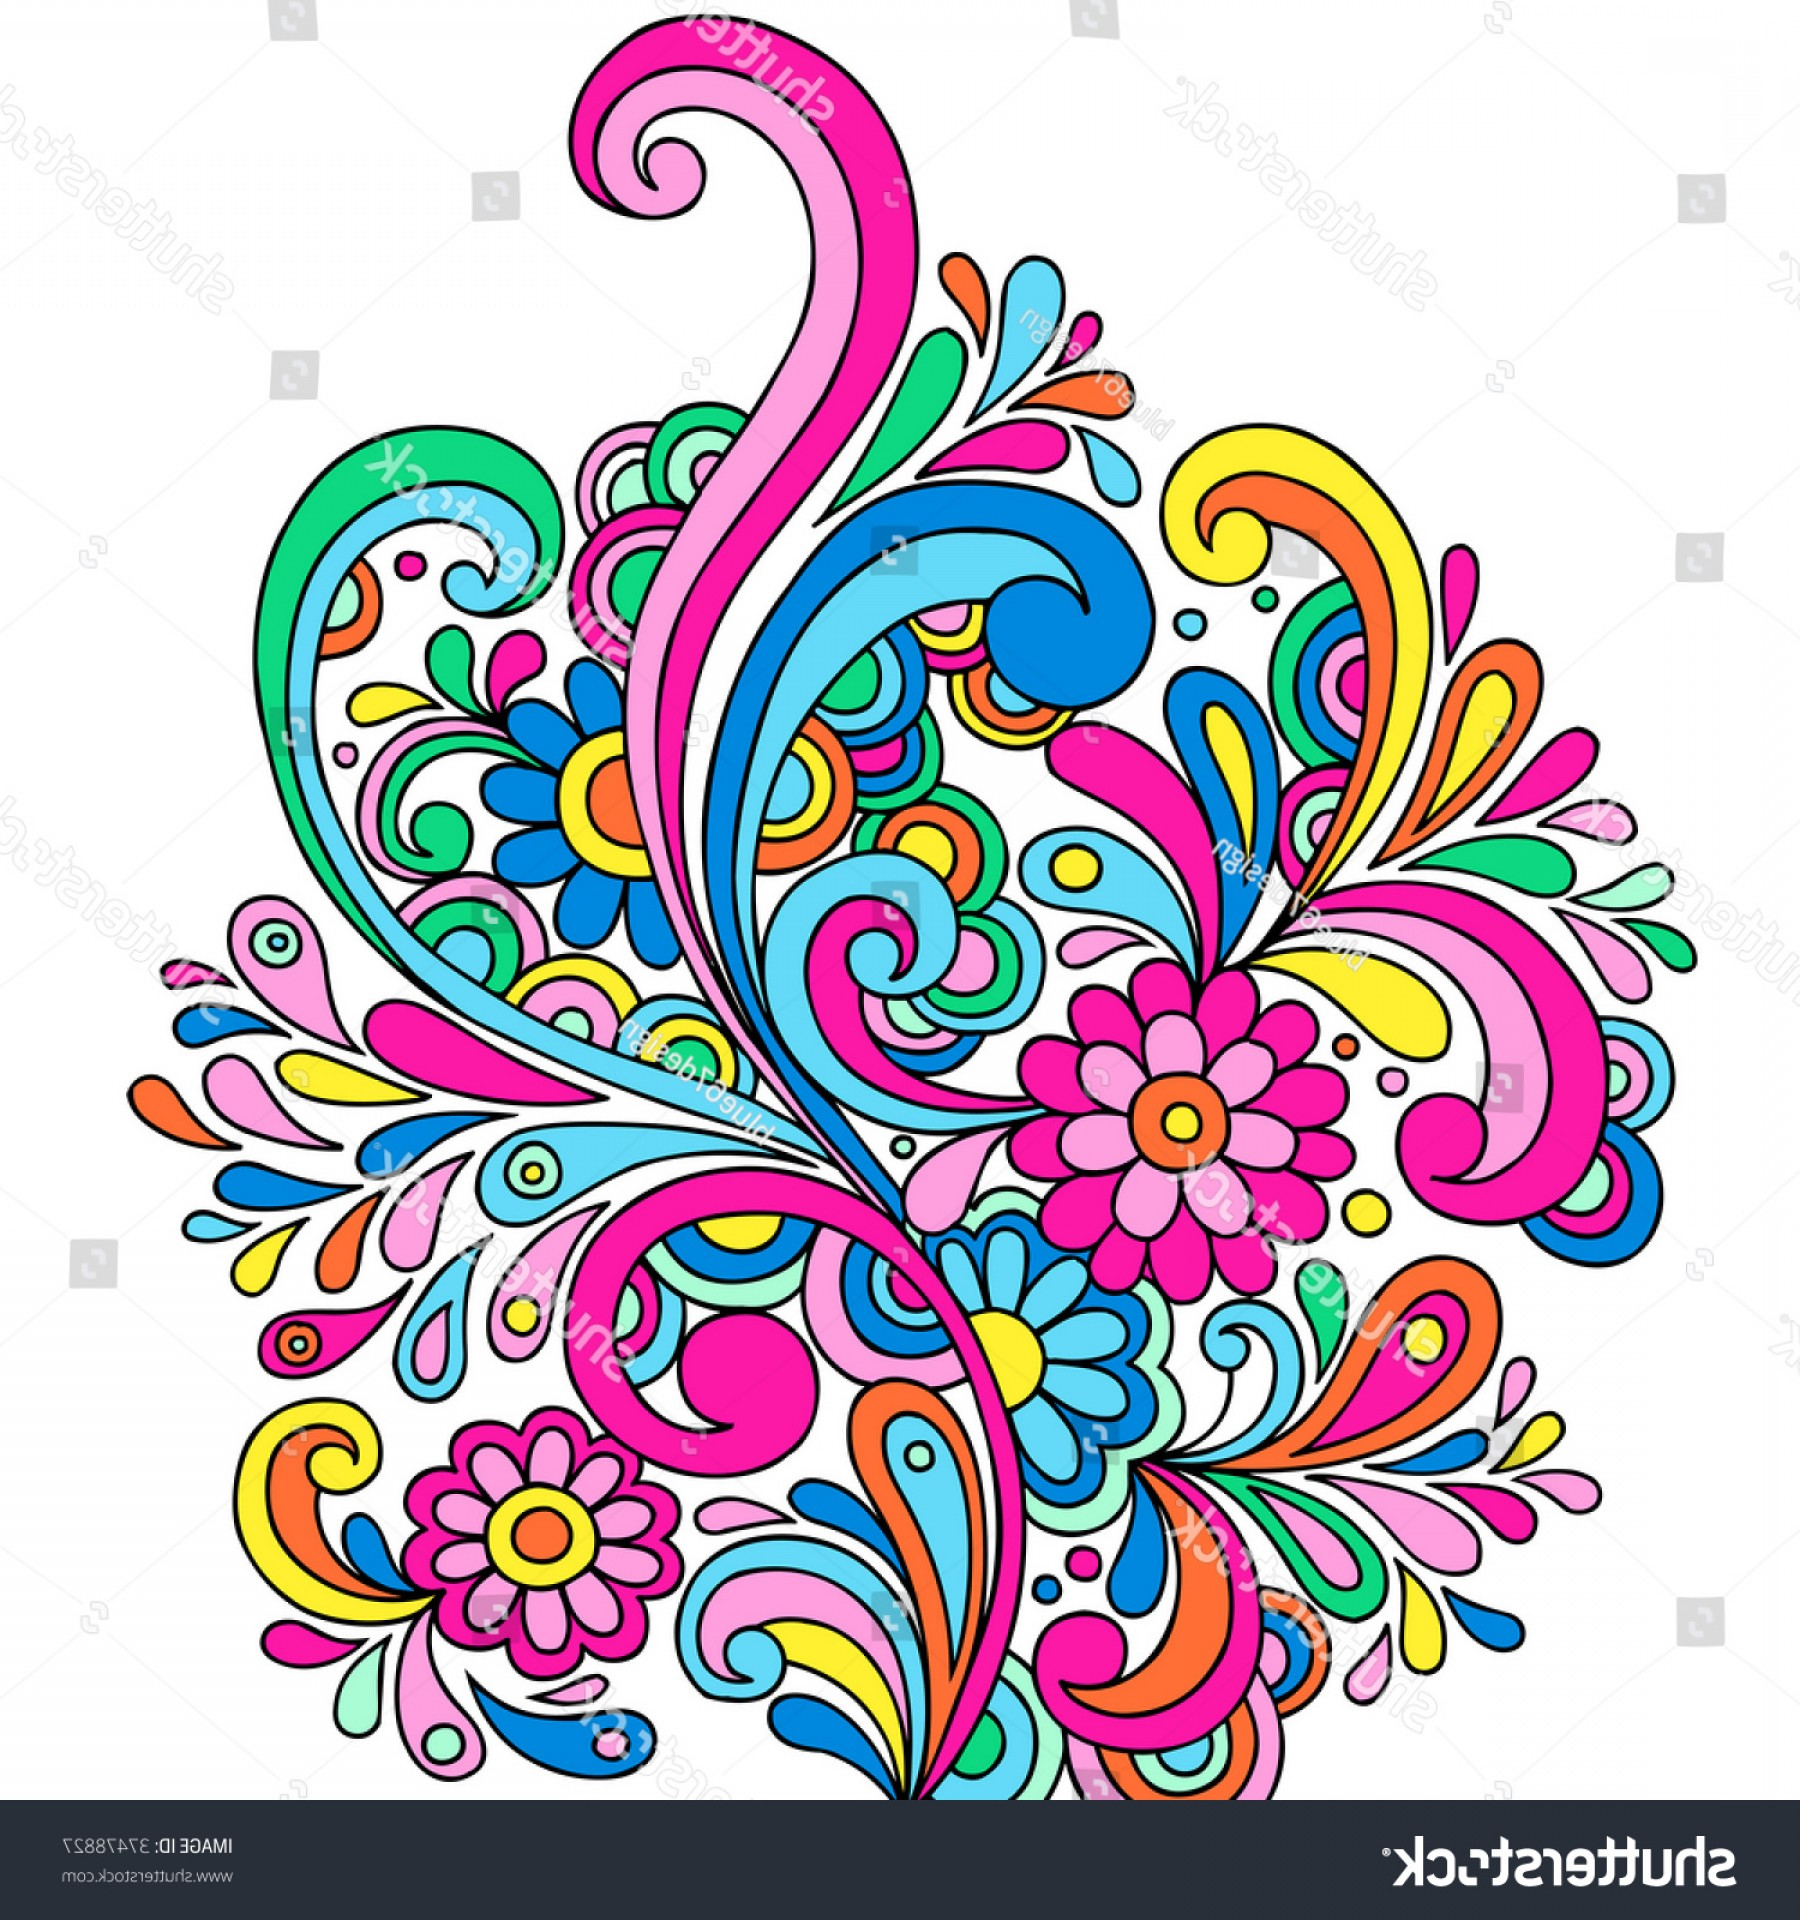 Paisley Swirl Flower Vector: Psychedelic Abstract Paisley Doodle Flowers Swirls